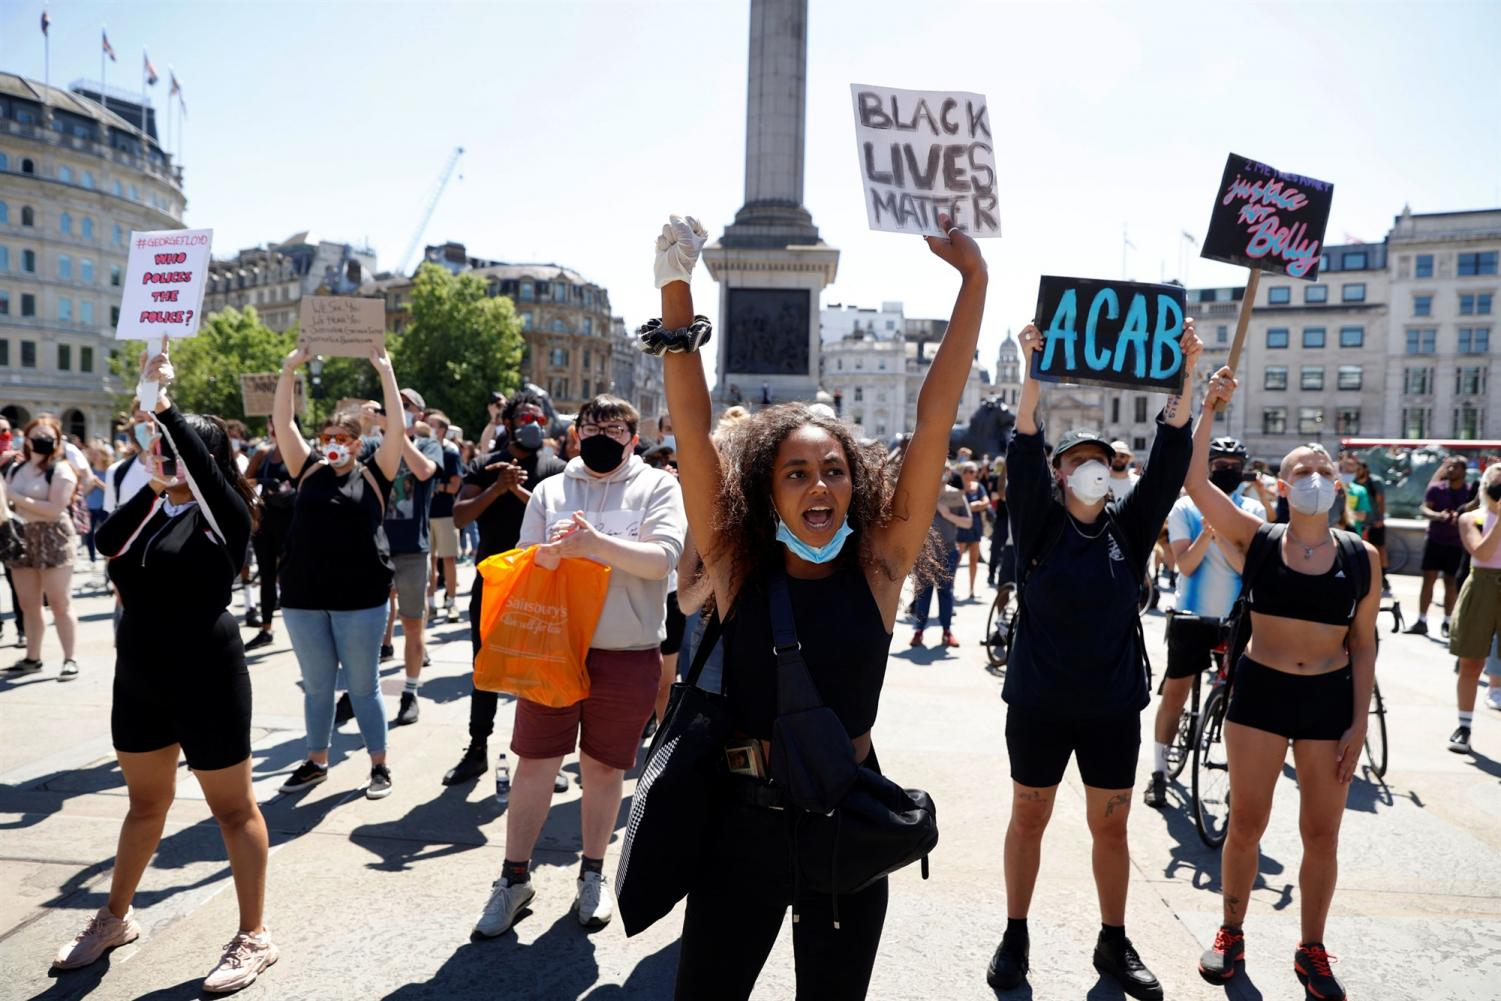 People of color are protesting because unjust systems have given them no other option.